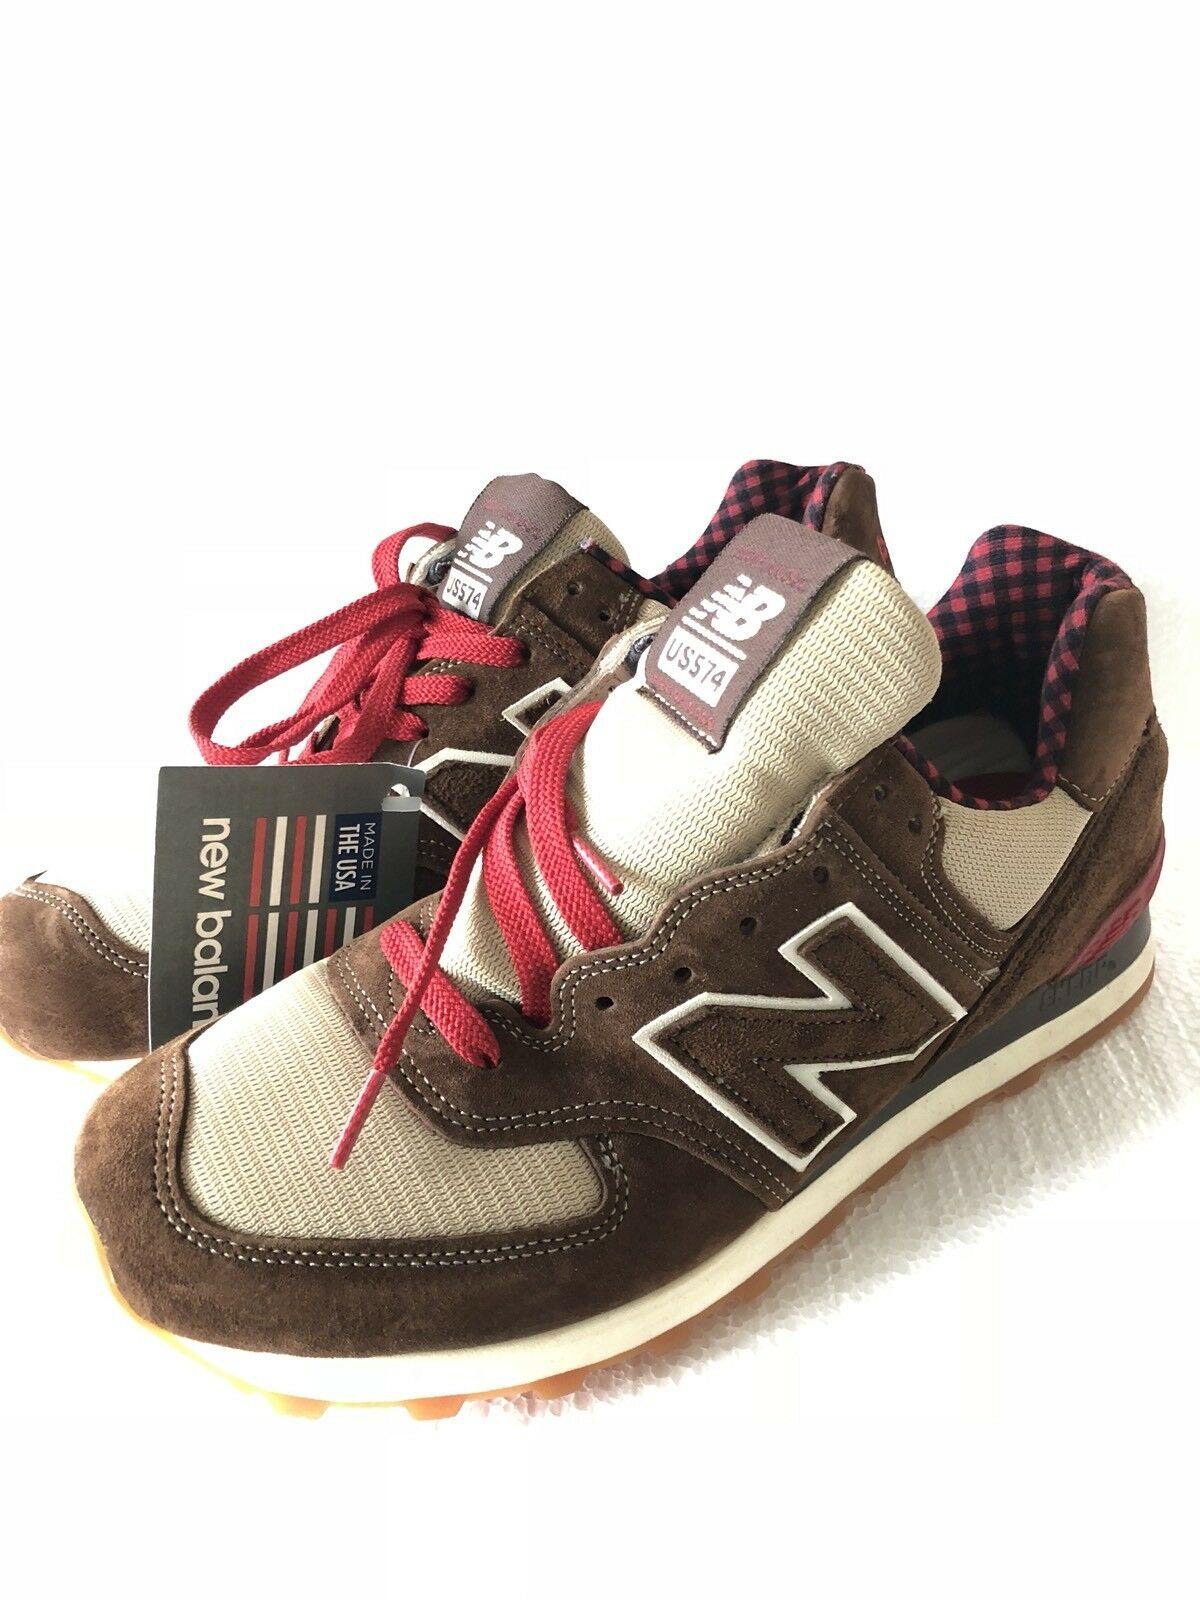 New Balance Classics 574 Paul Bunyan rouge marron Made In USA US574 M574PB Sz 9